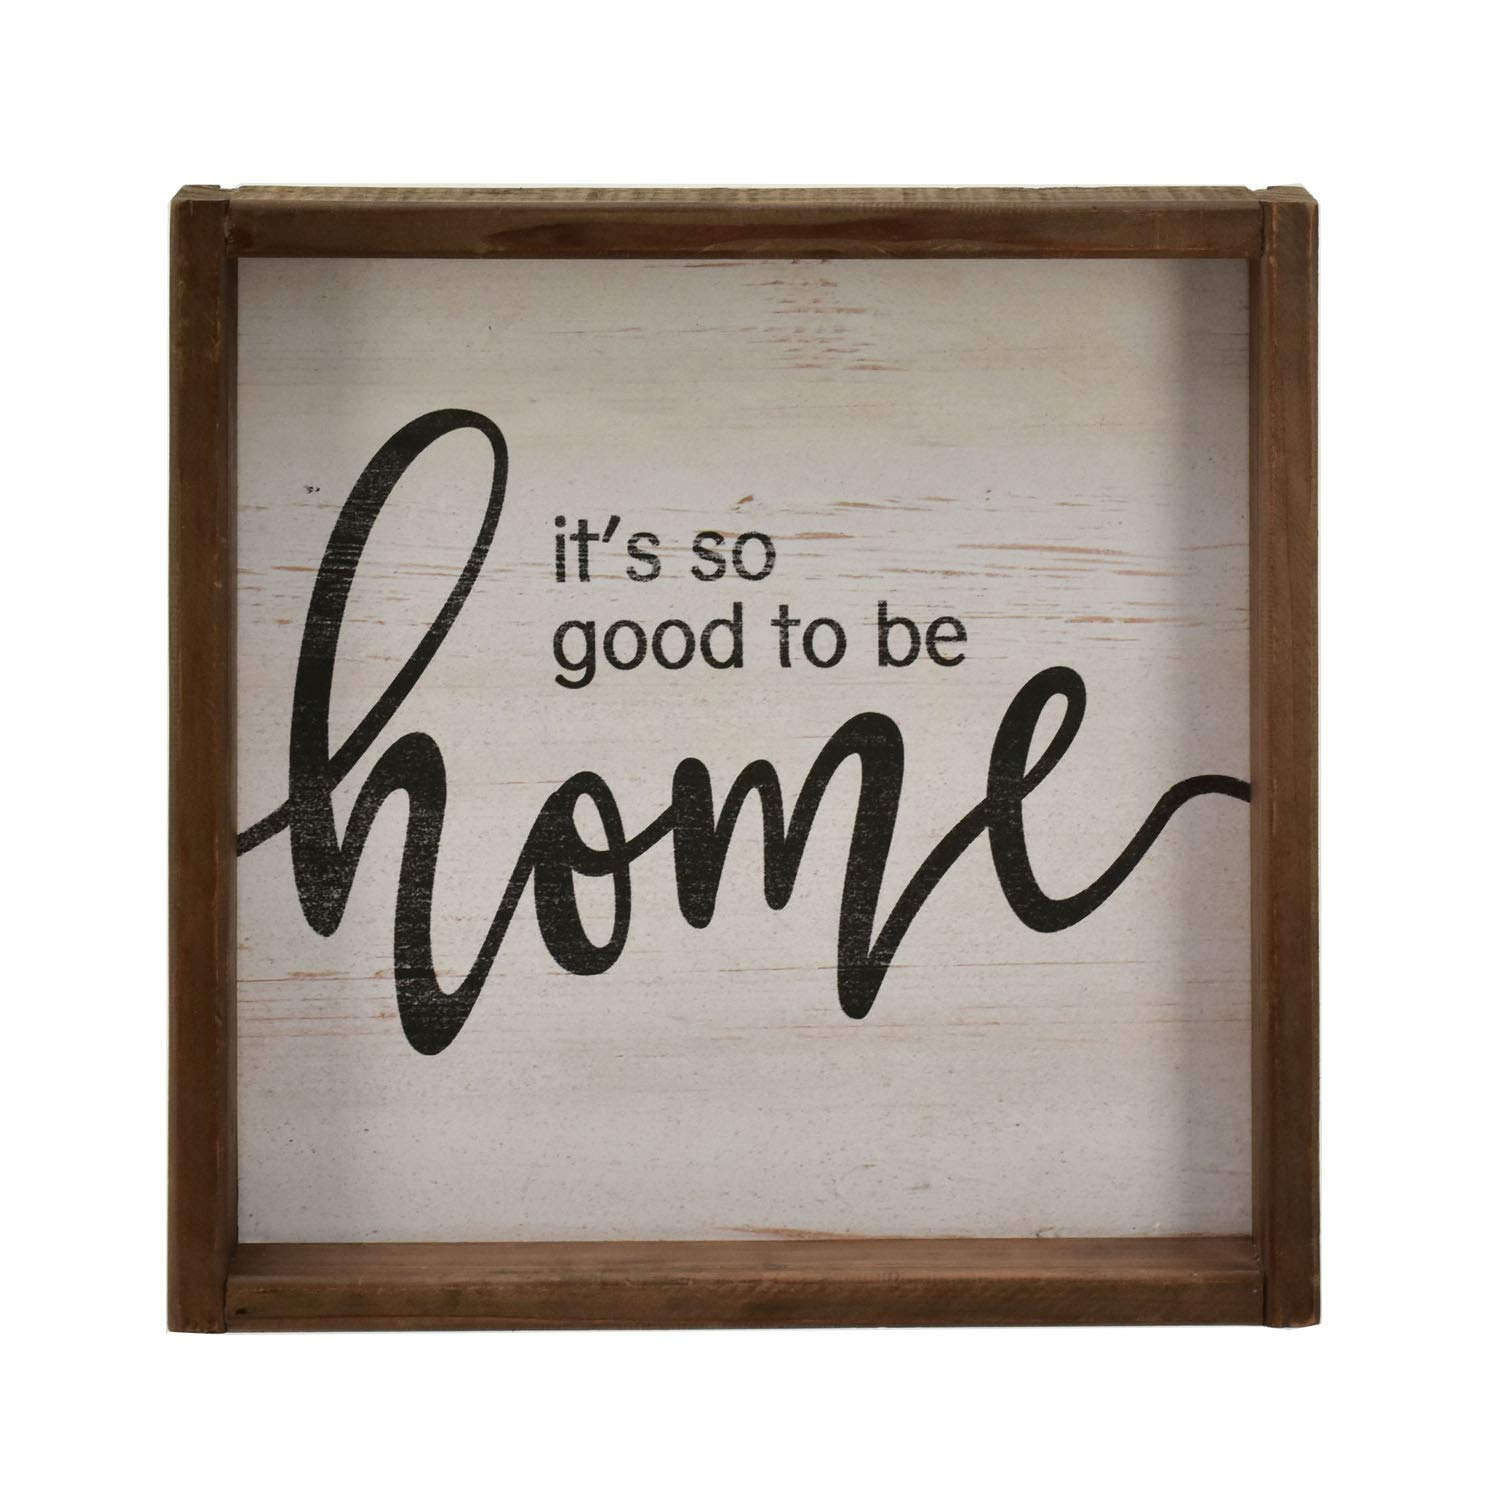 Parisloft It's So Good to Be Home Rustic Wood Signs,Wooden Framed Farmhouse Plaque, Farmhouse Real Wood Wall Hanging Decor,11.8''x11.8''